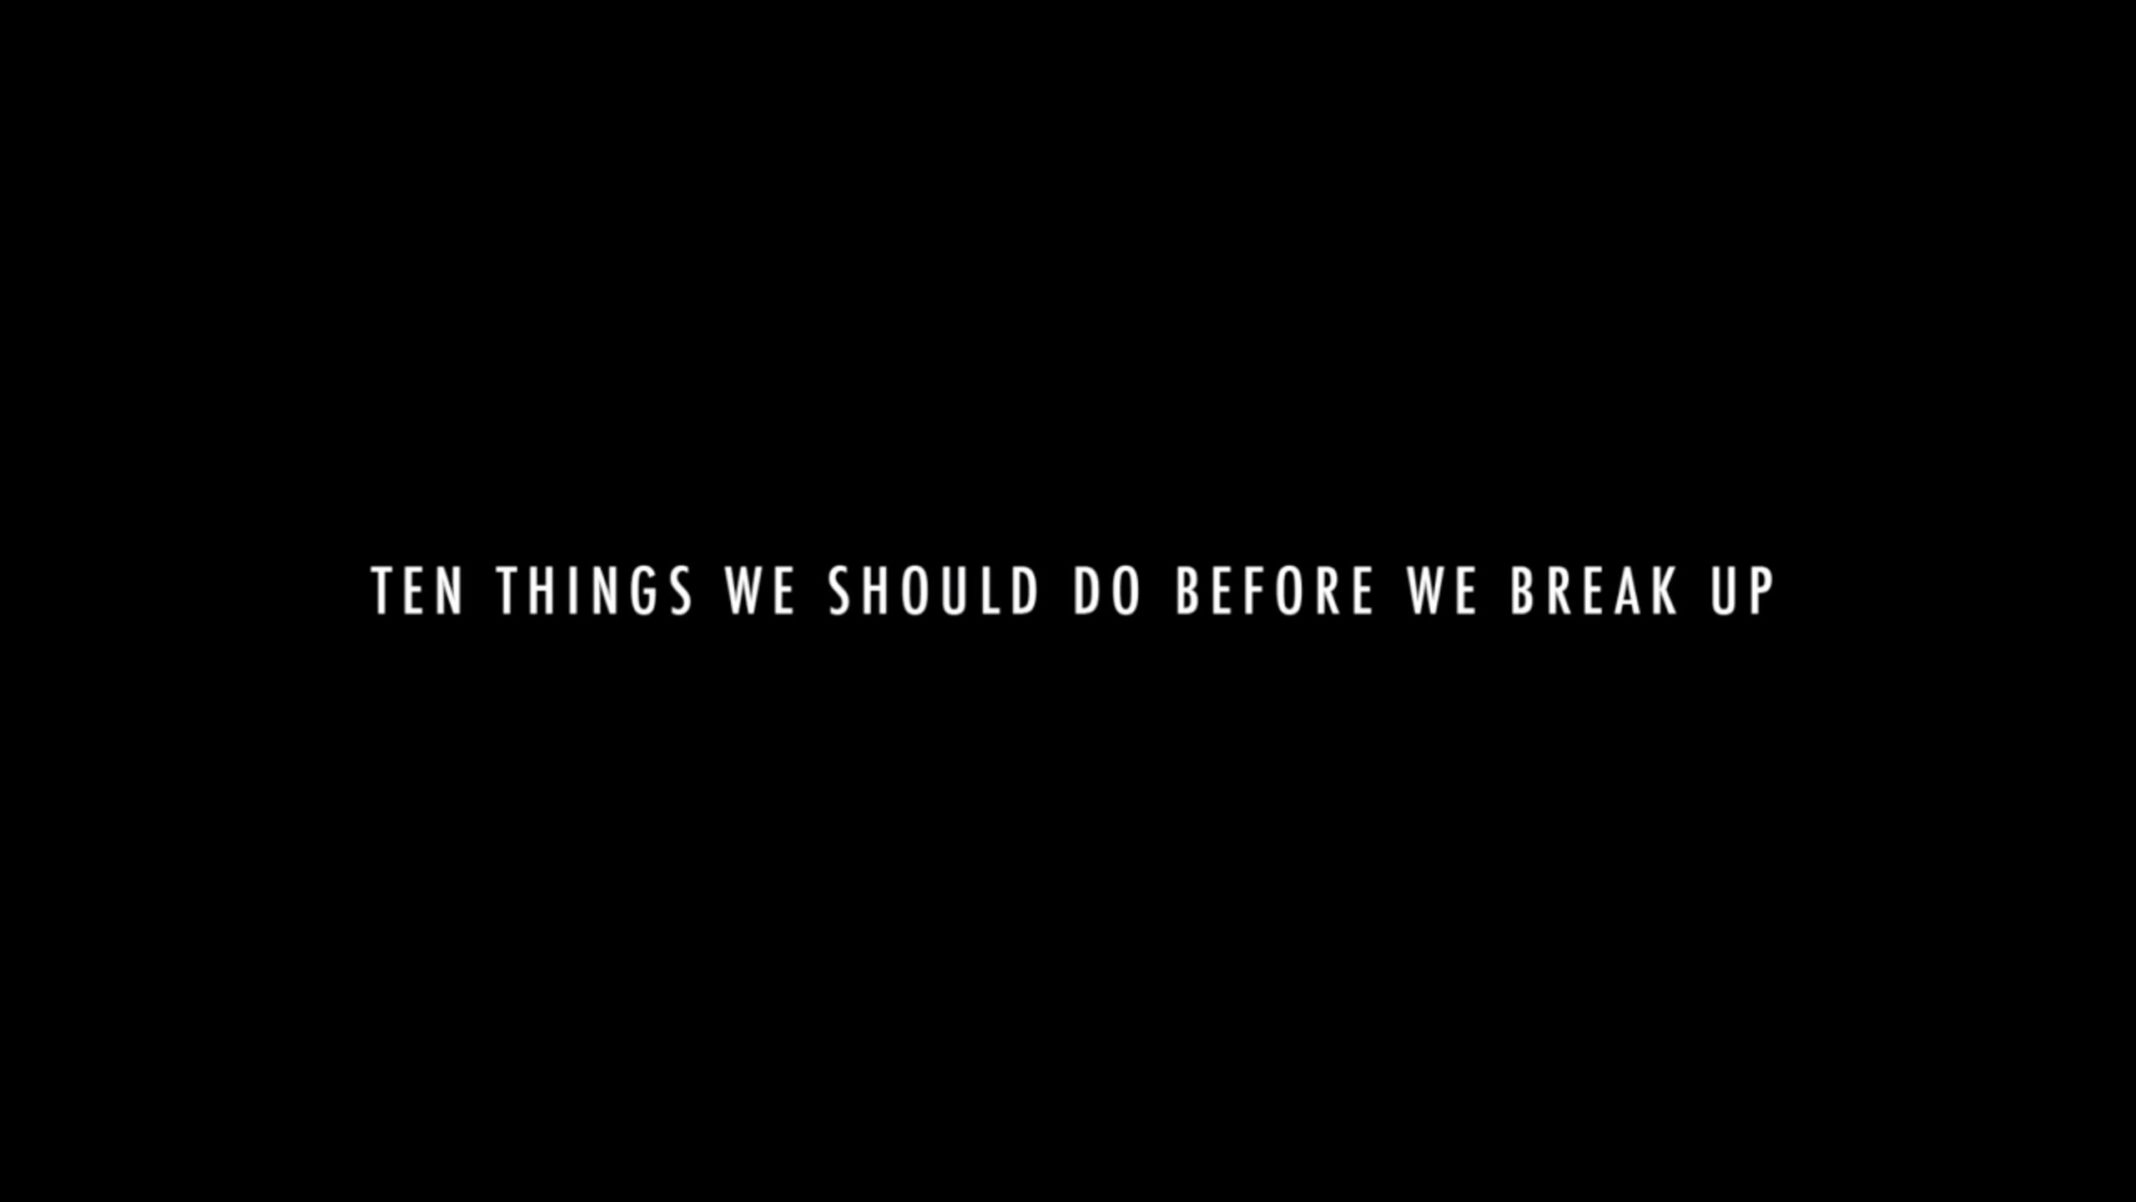 Title Card - 10 Things We Should Do Before We Break Up